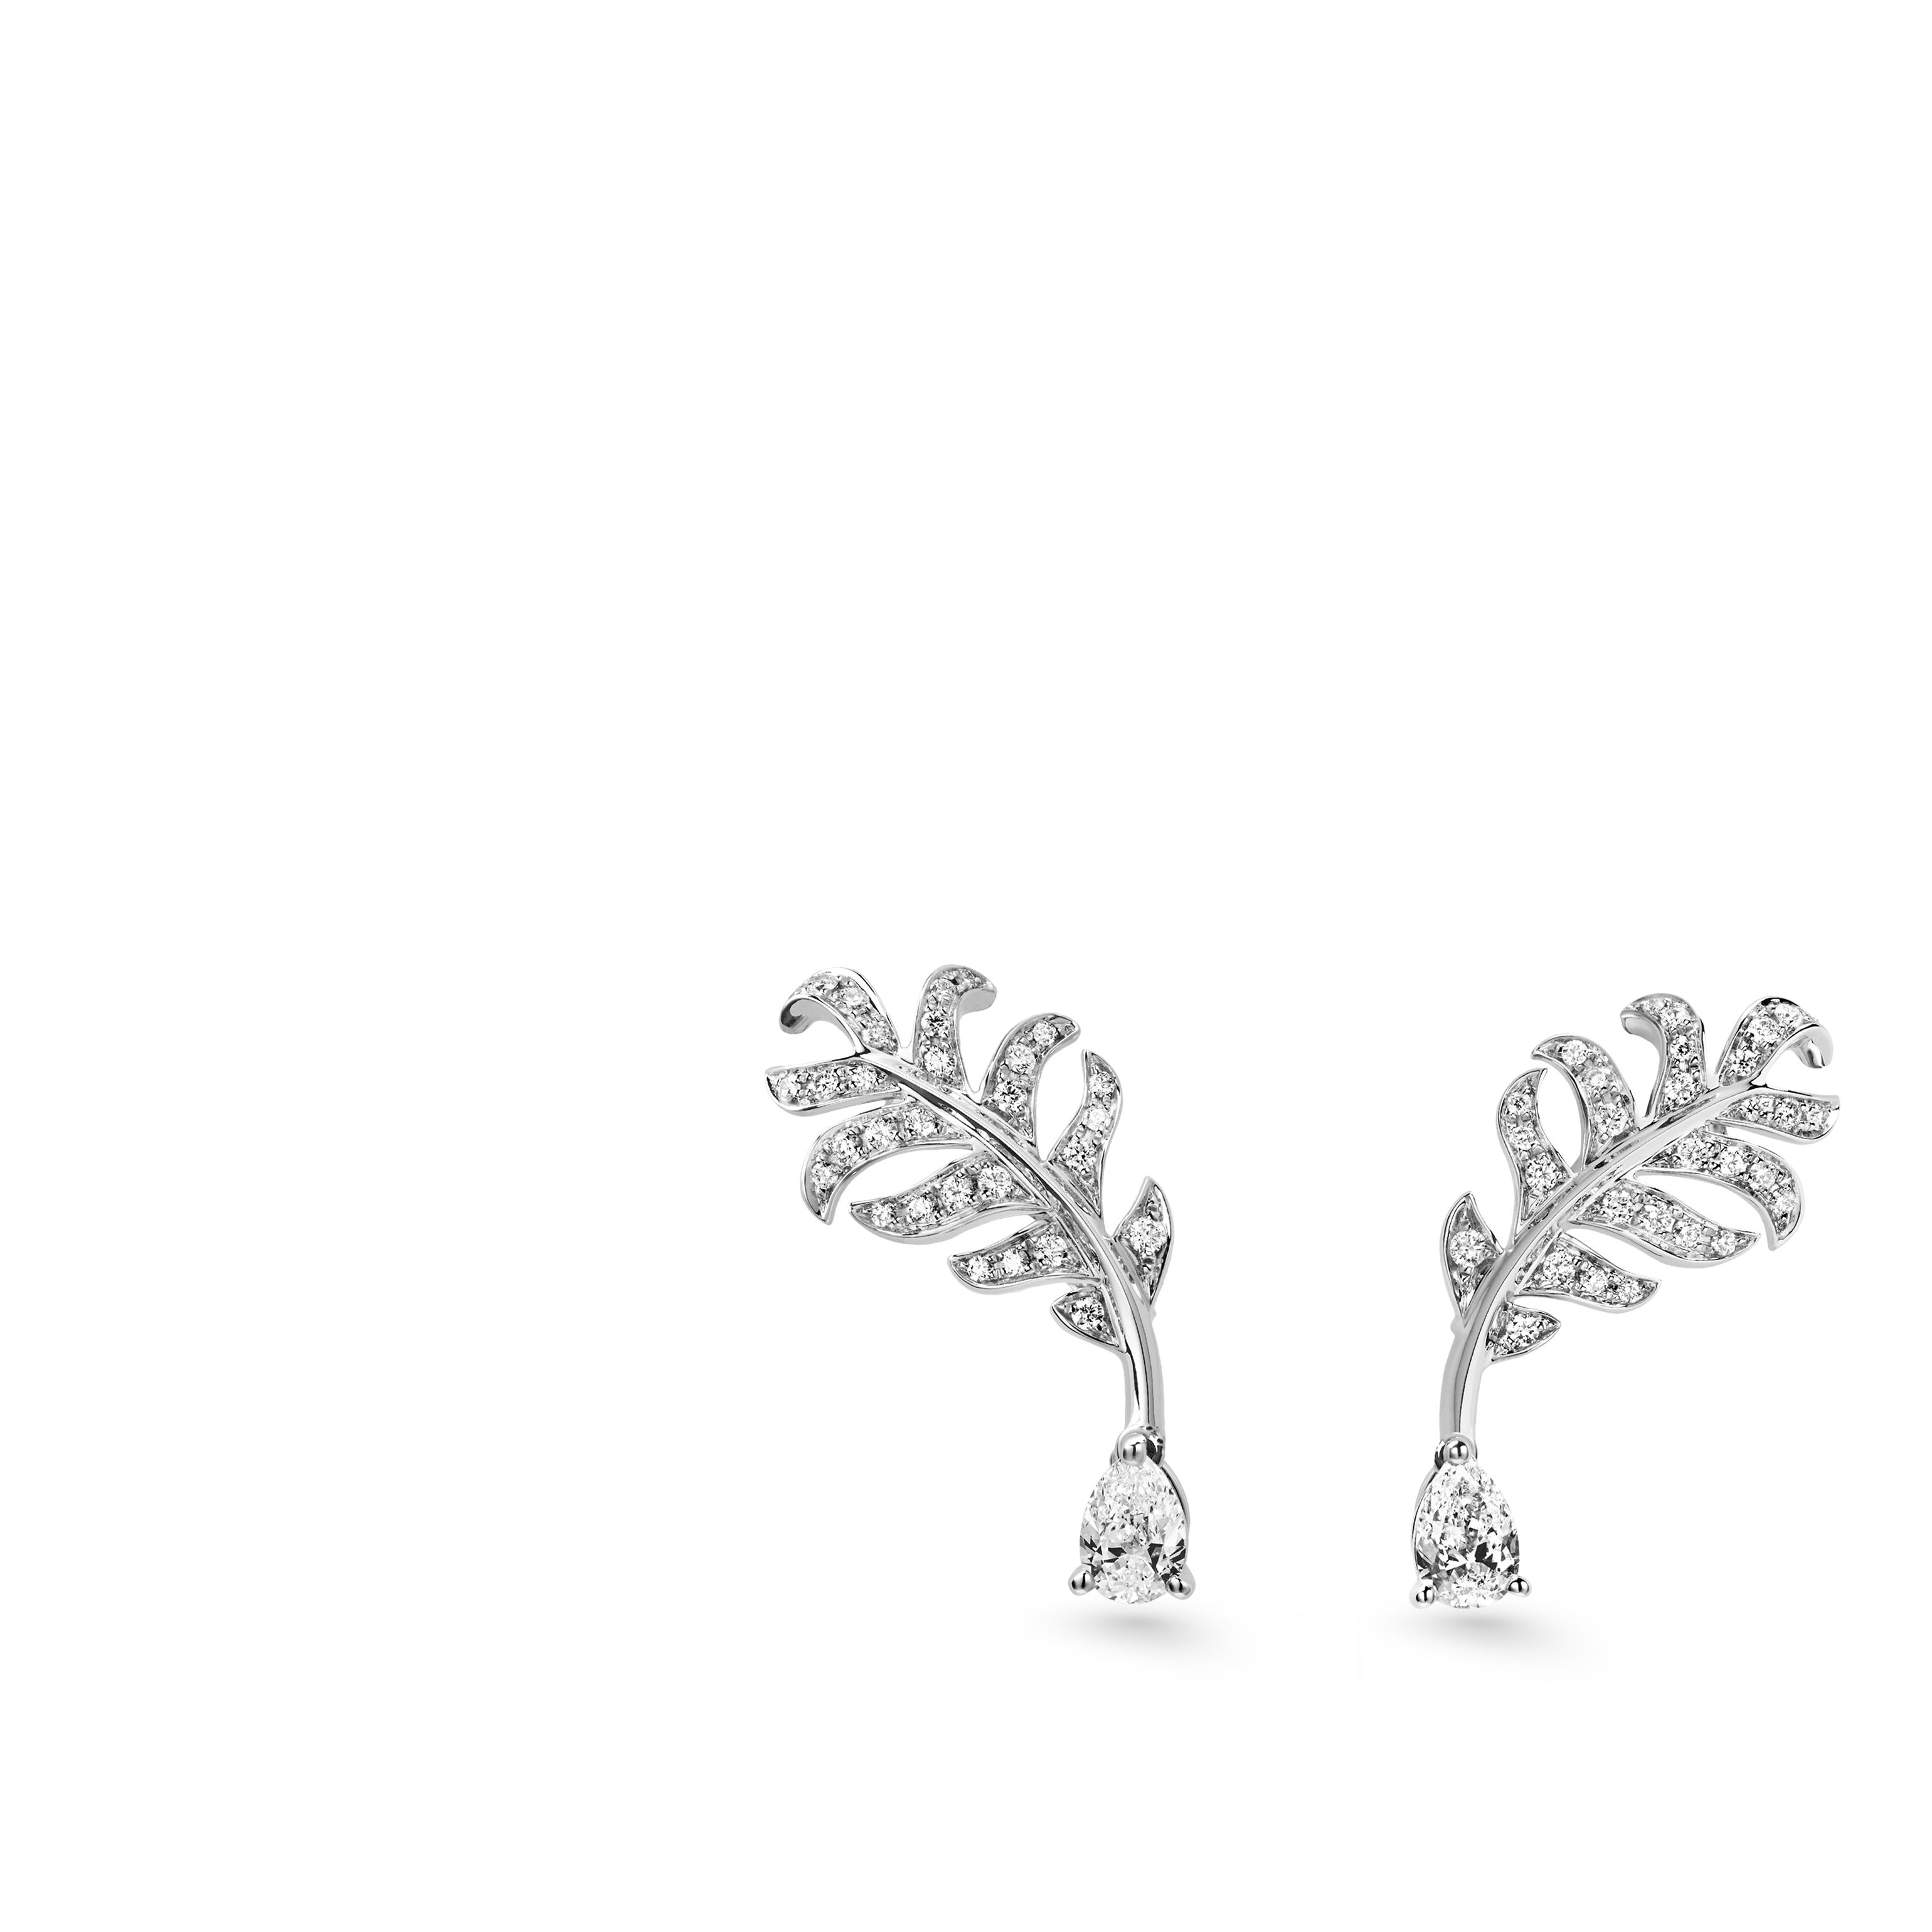 Name Plume De Chanel Earrings Reference J10816 Collection Category Materials White Golddiamond